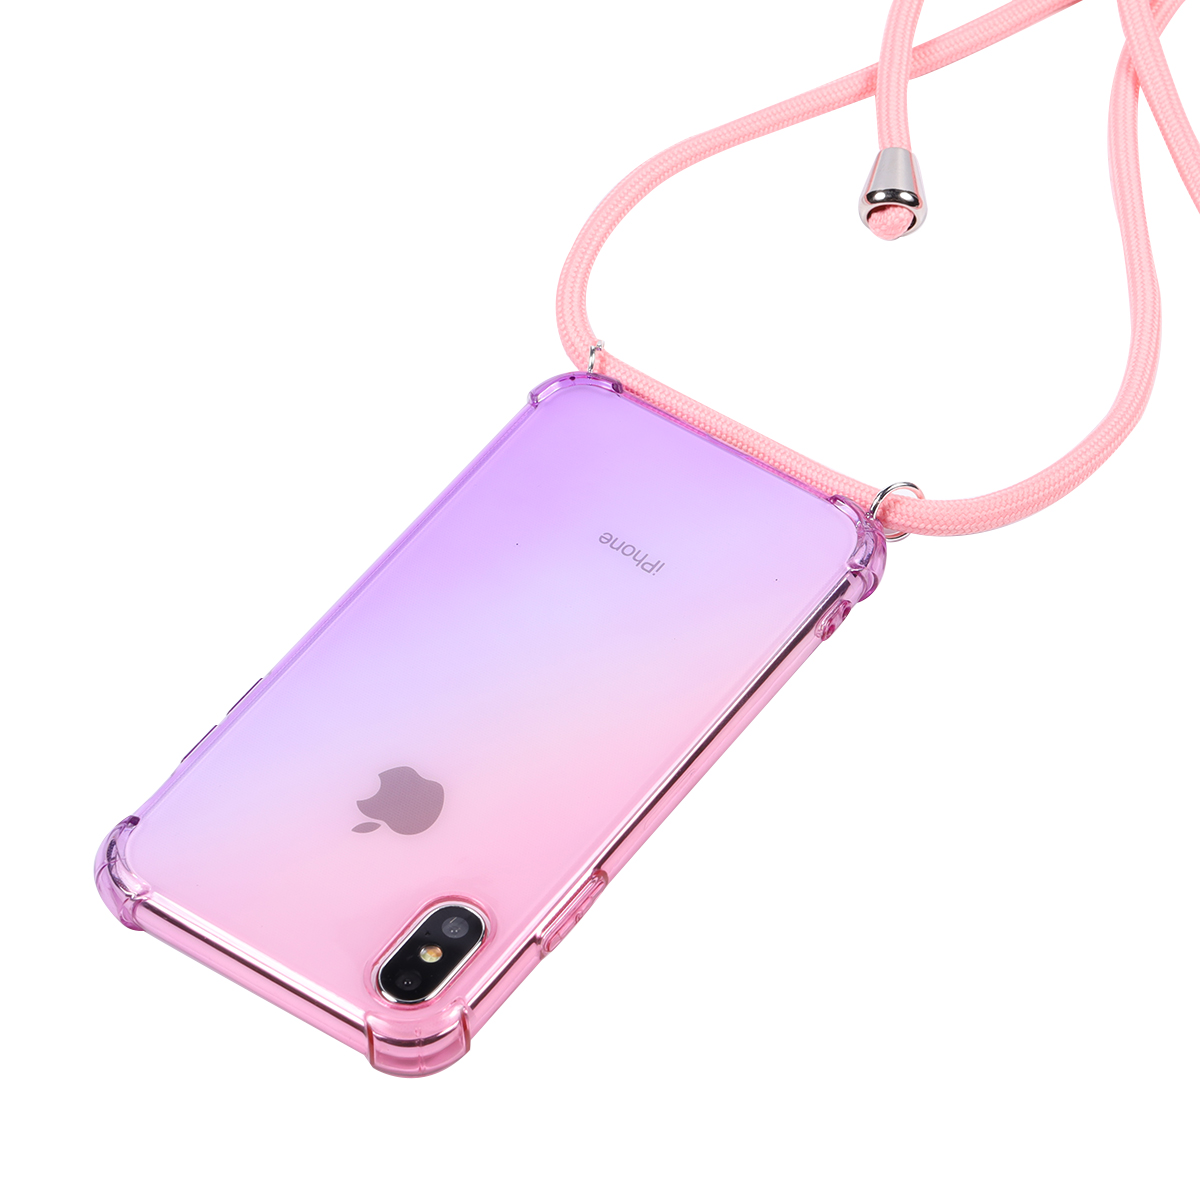 lanyard Rainbow aurora transparent <font><b>case</b></font> for <font><b>OPPO</b></font> <font><b>A5</b></font> <font><b>A9</b></font> <font><b>2020</b></font> Realme X X2 Pro 5 X50 A7X A79 A31 A91 A8 Q shoulder rope cord cover image